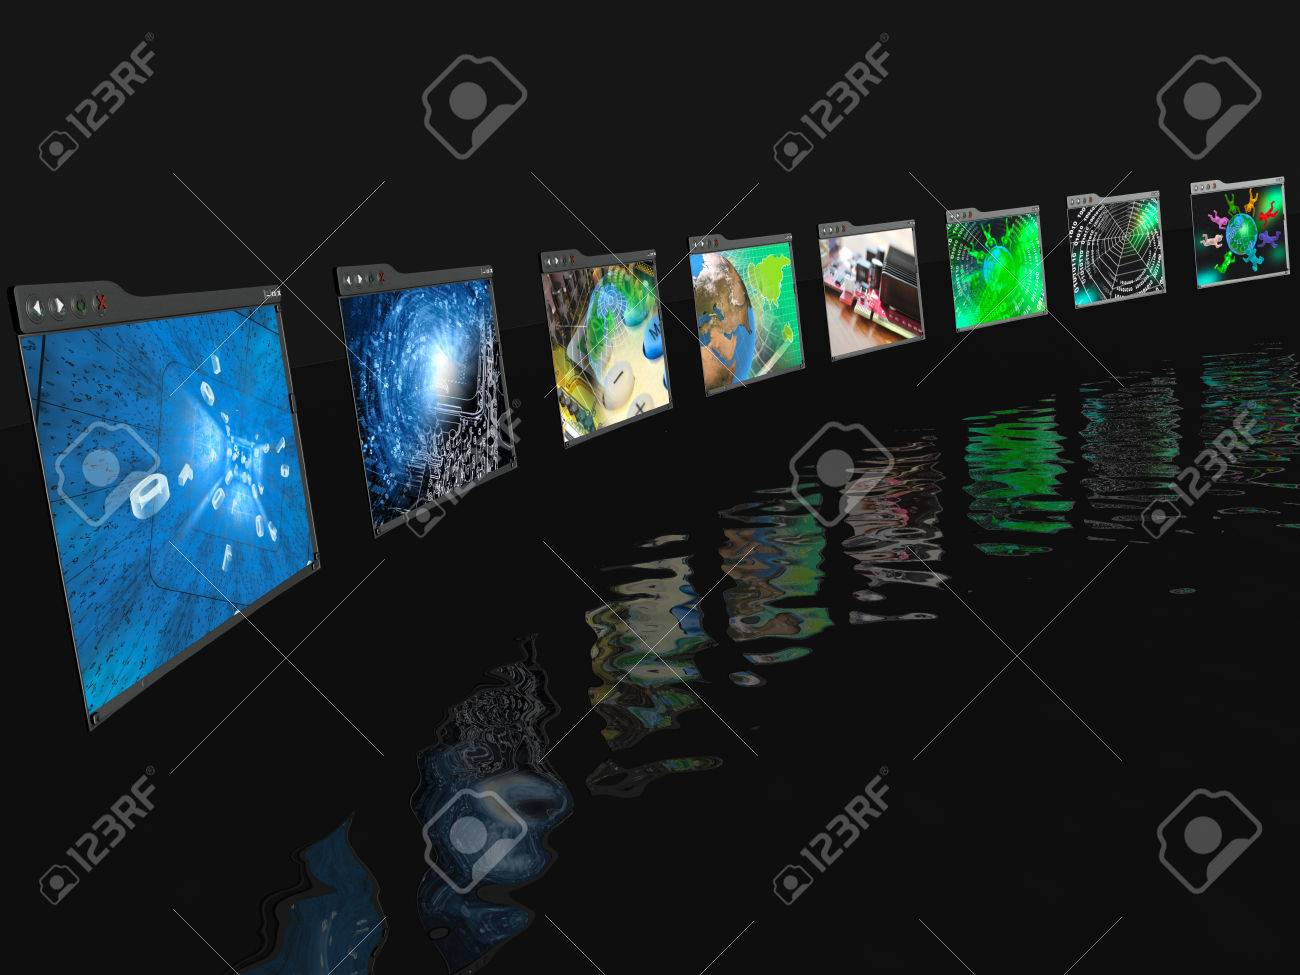 Web pages with pictures (computer) on black reflective background. - 24928398